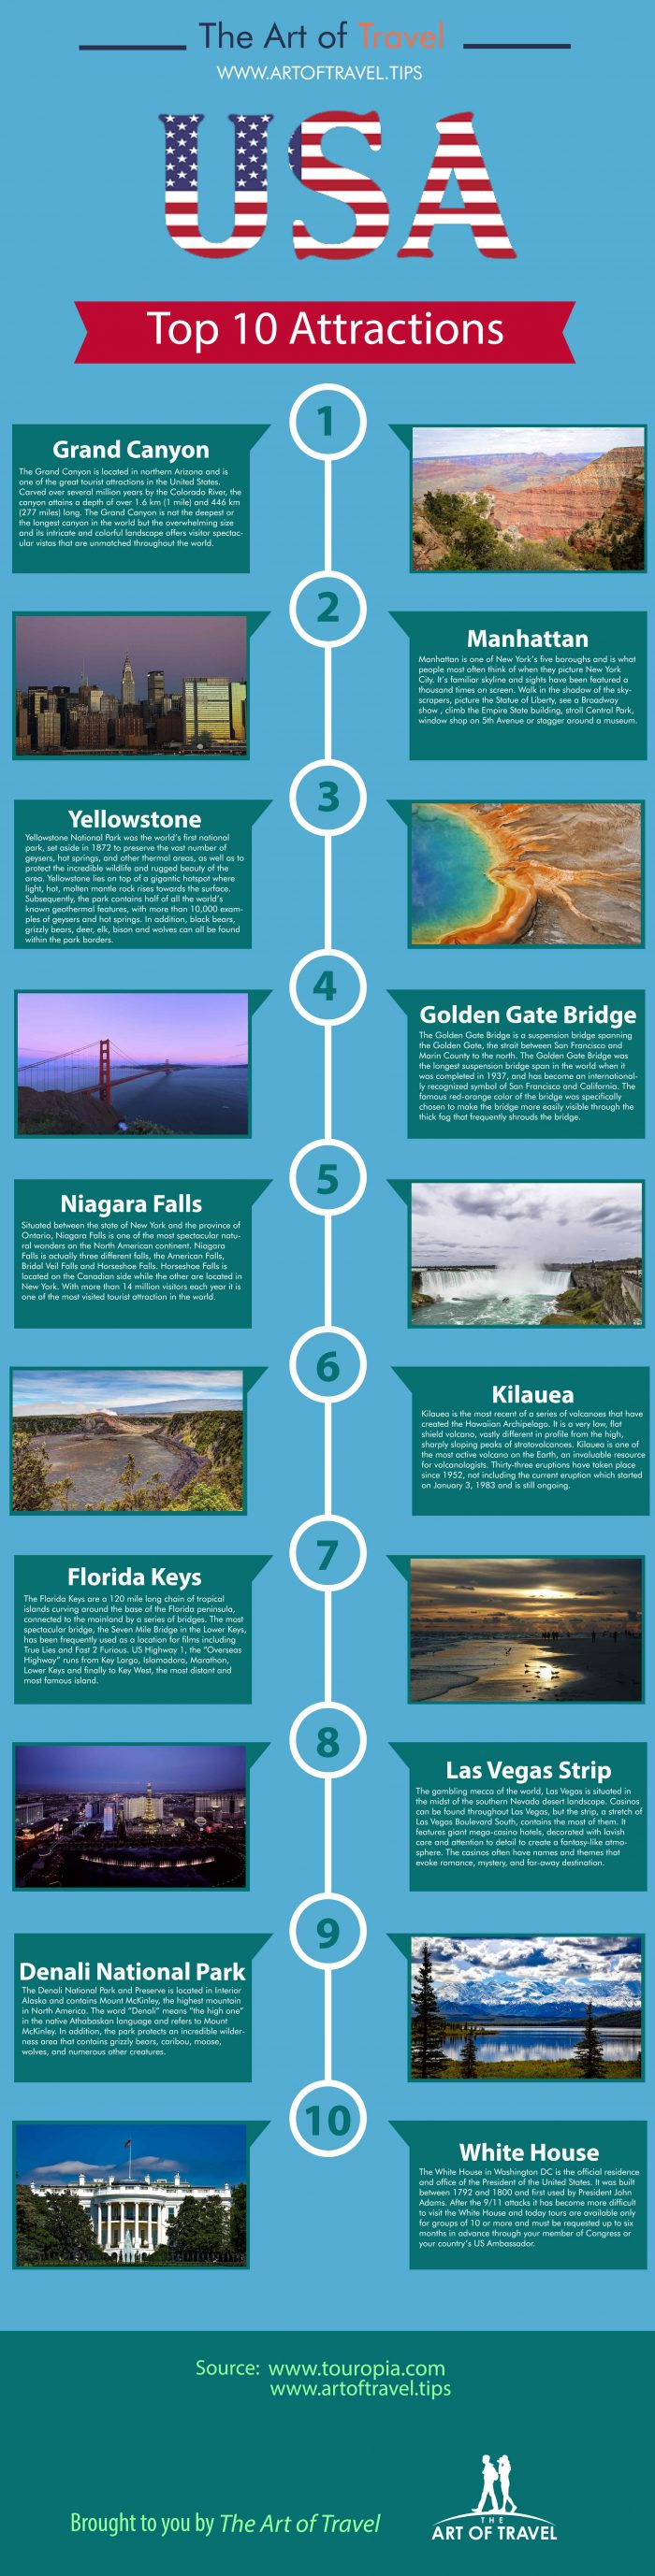 top 10 attractions in united states